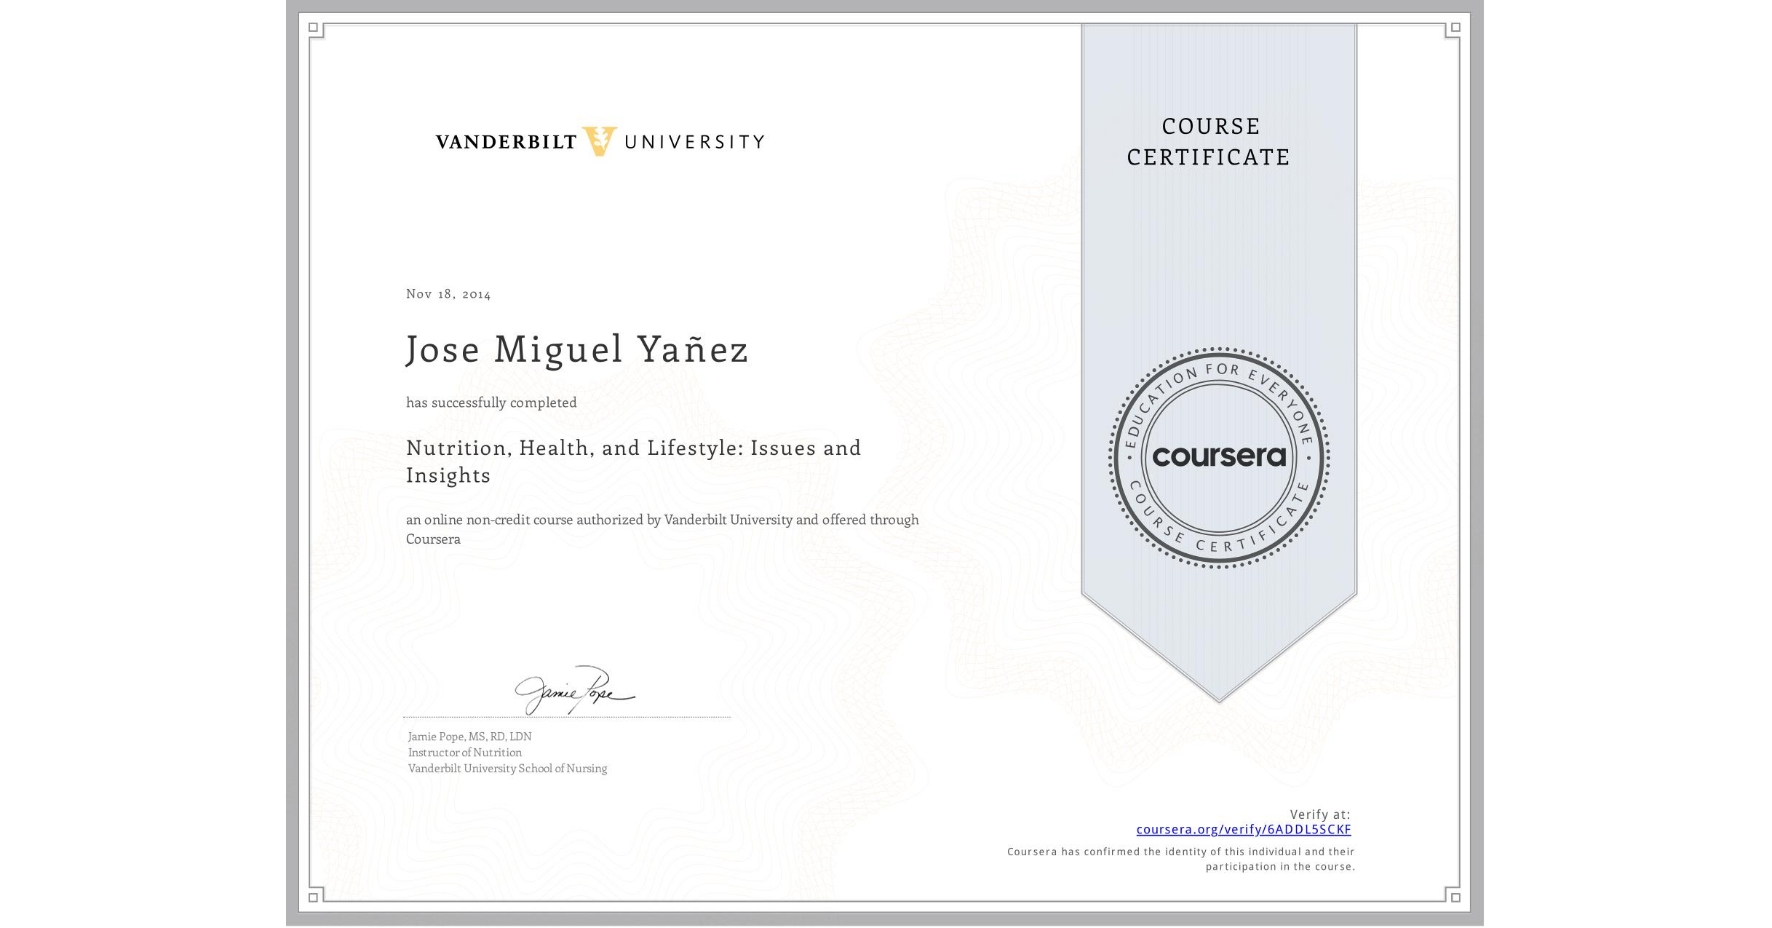 View certificate for Jose Miguel Yañez, Nutrition, Health, and Lifestyle: Issues and Insights, an online non-credit course authorized by Vanderbilt University and offered through Coursera